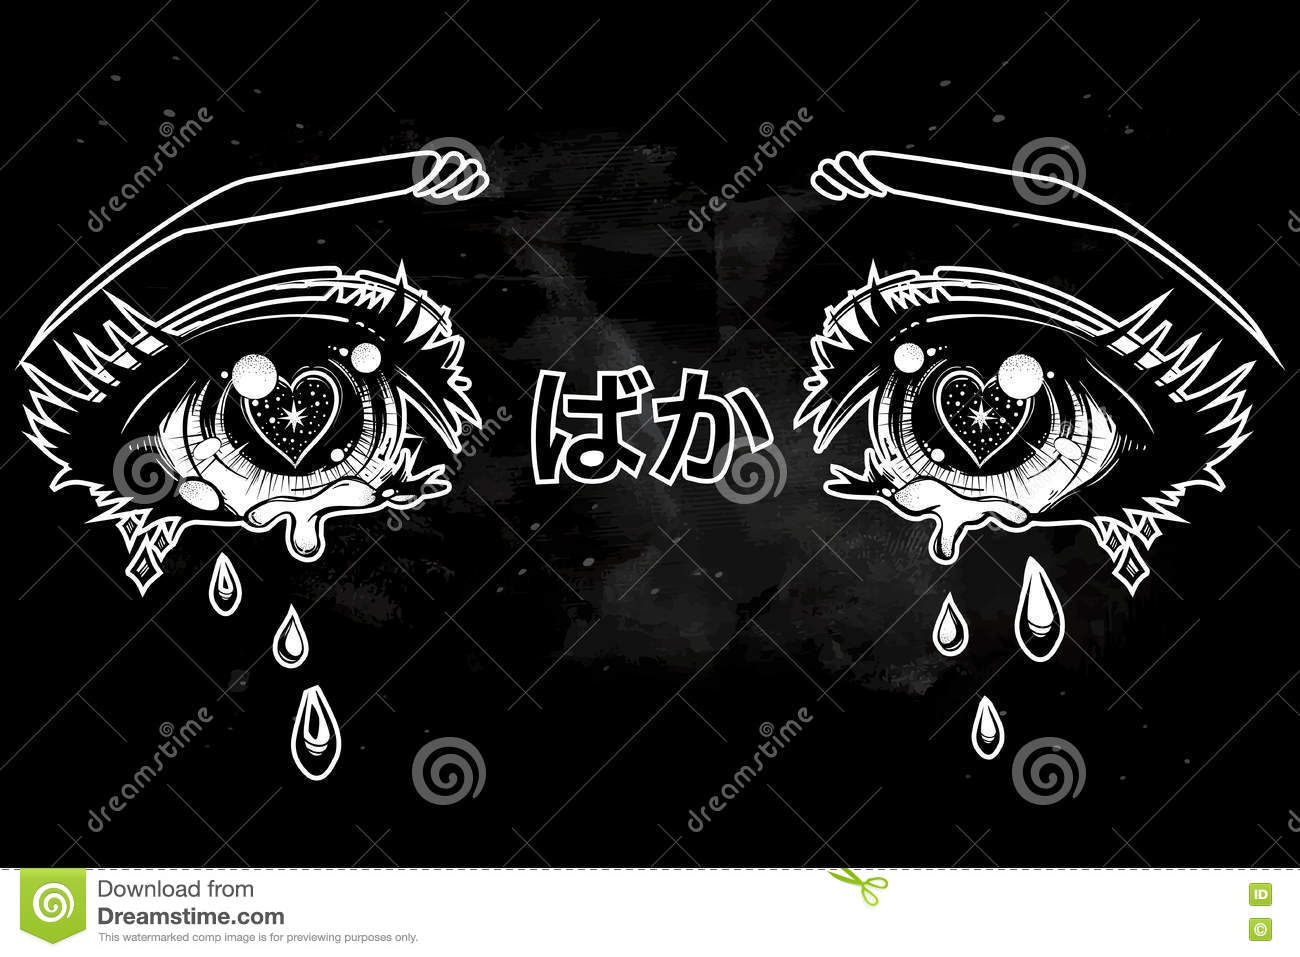 Crying eyes in anime or manga style with teardrops and reflections japanese word baka in hiragana writing system means fool